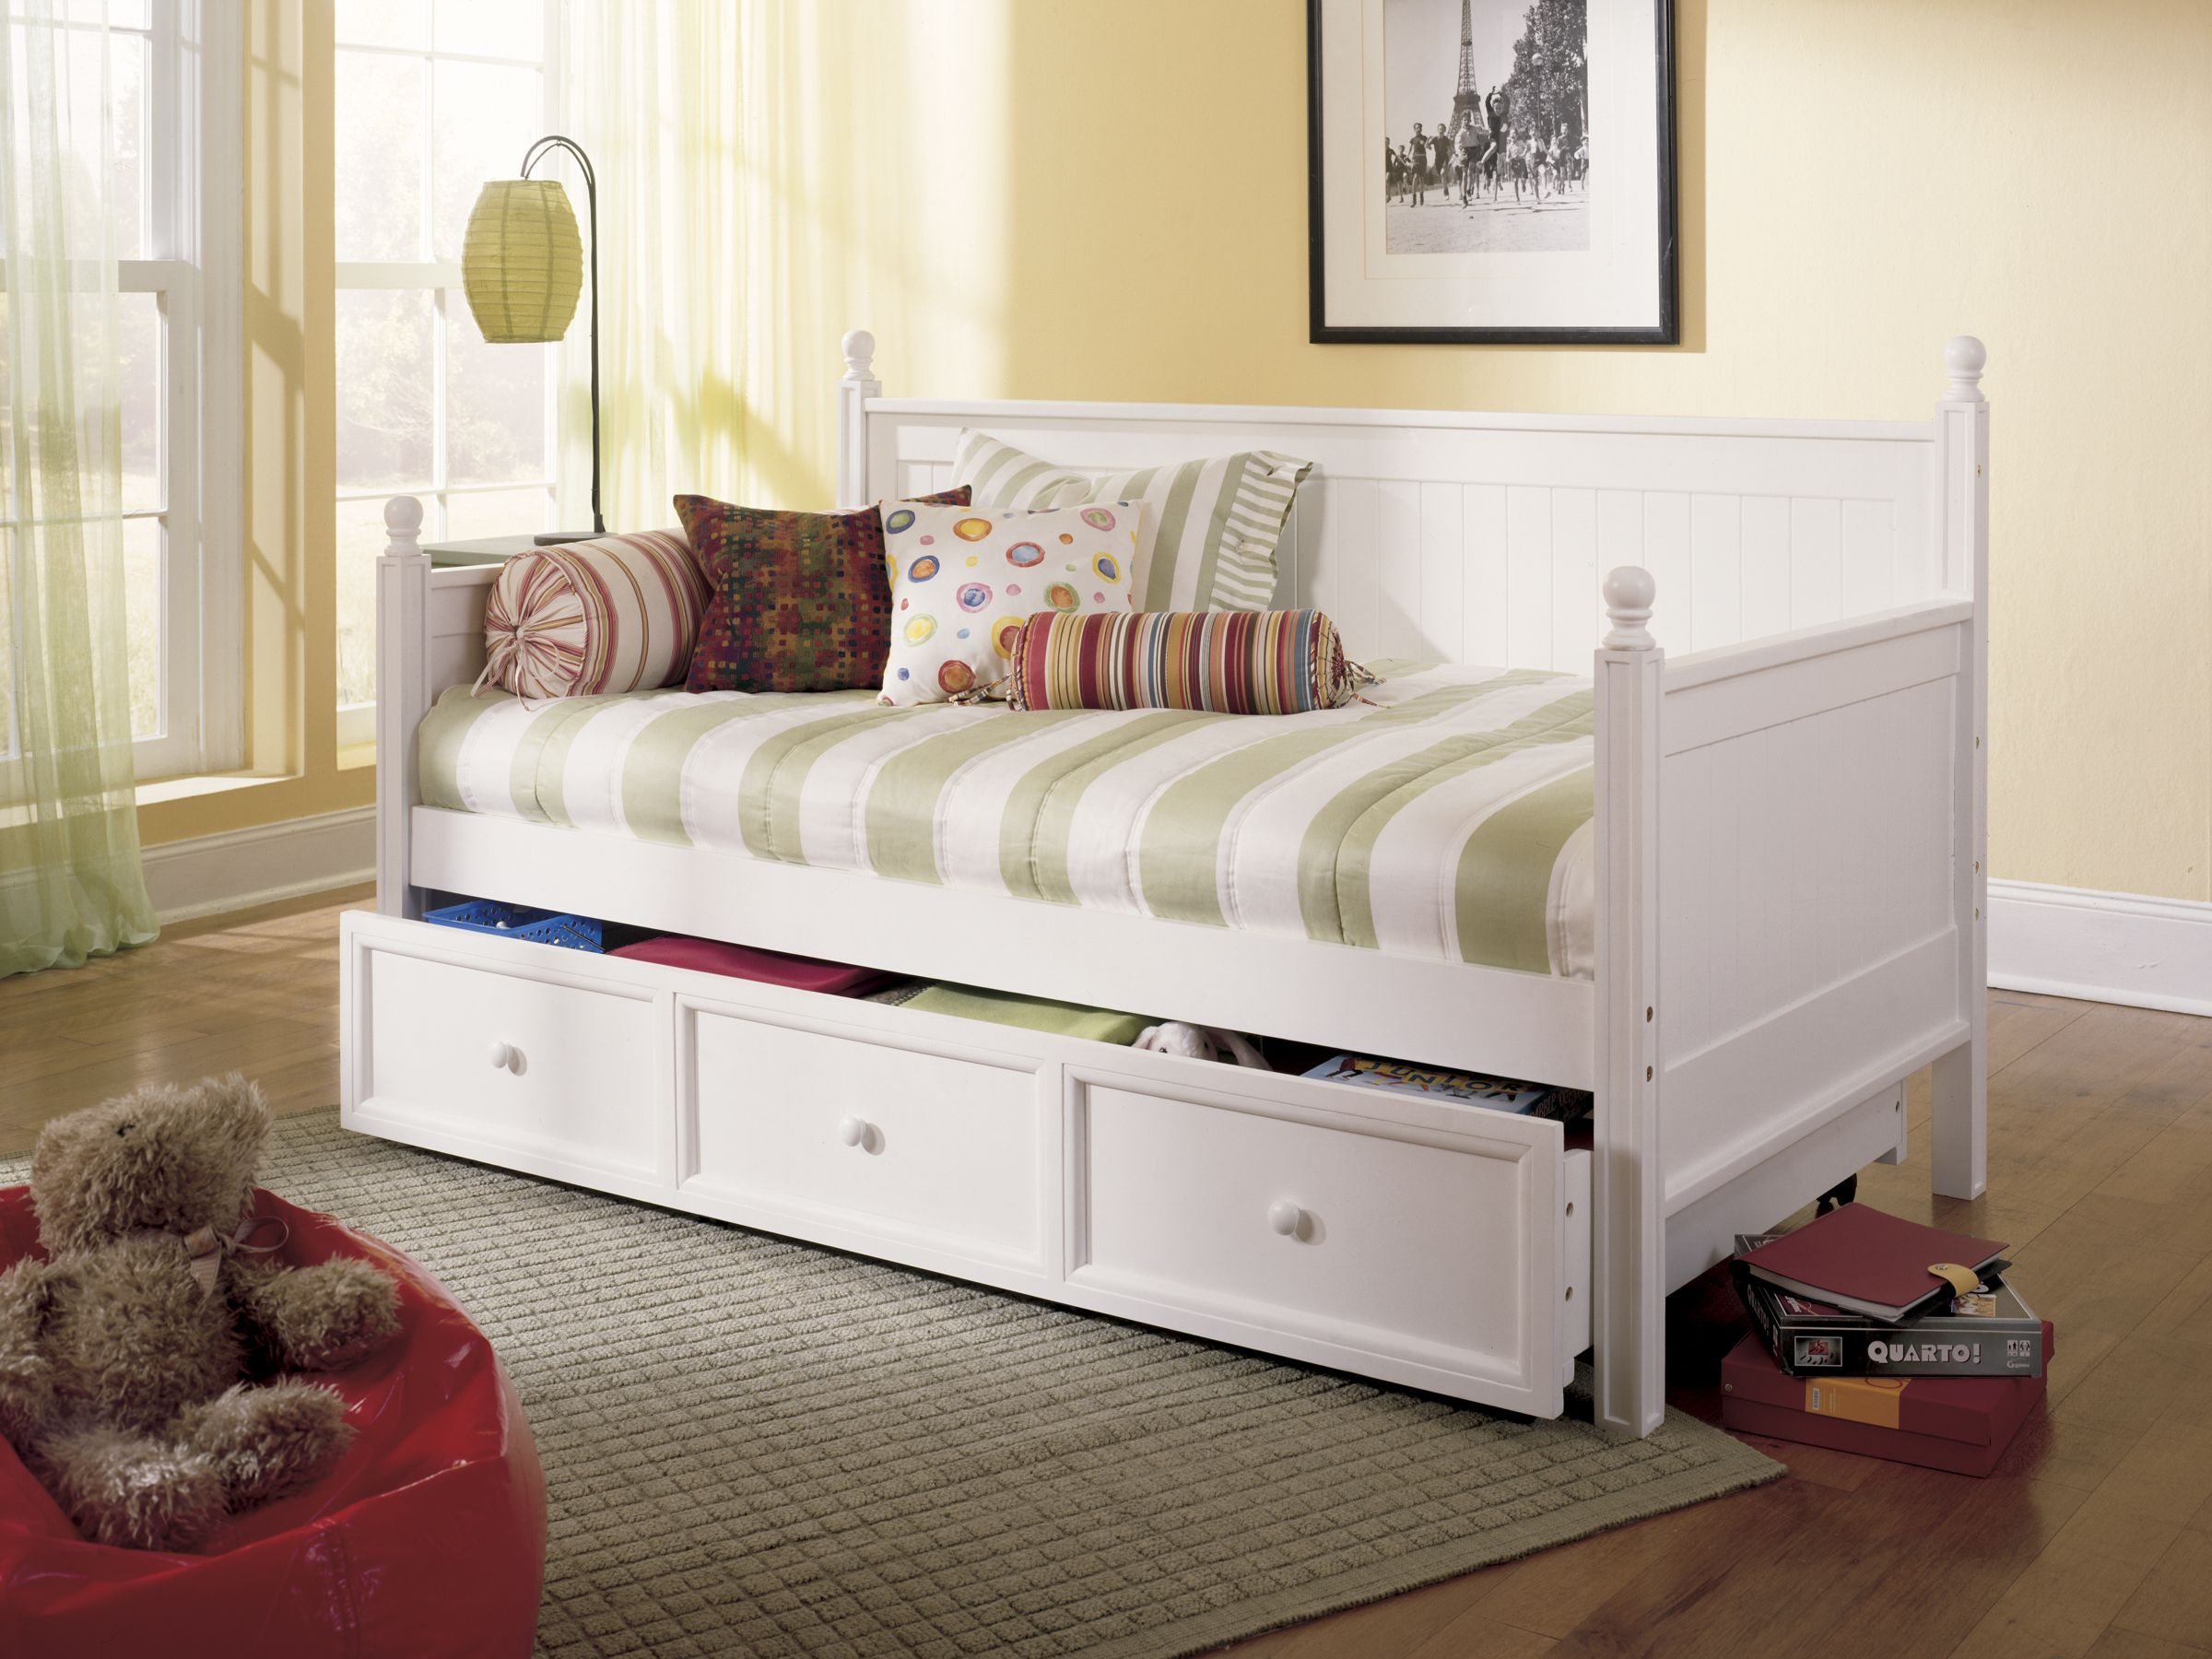 Day beds for teens - Casey Twin Trundle Daybed Overstock Shopping Great Deals On Fashion Bed Group Beds